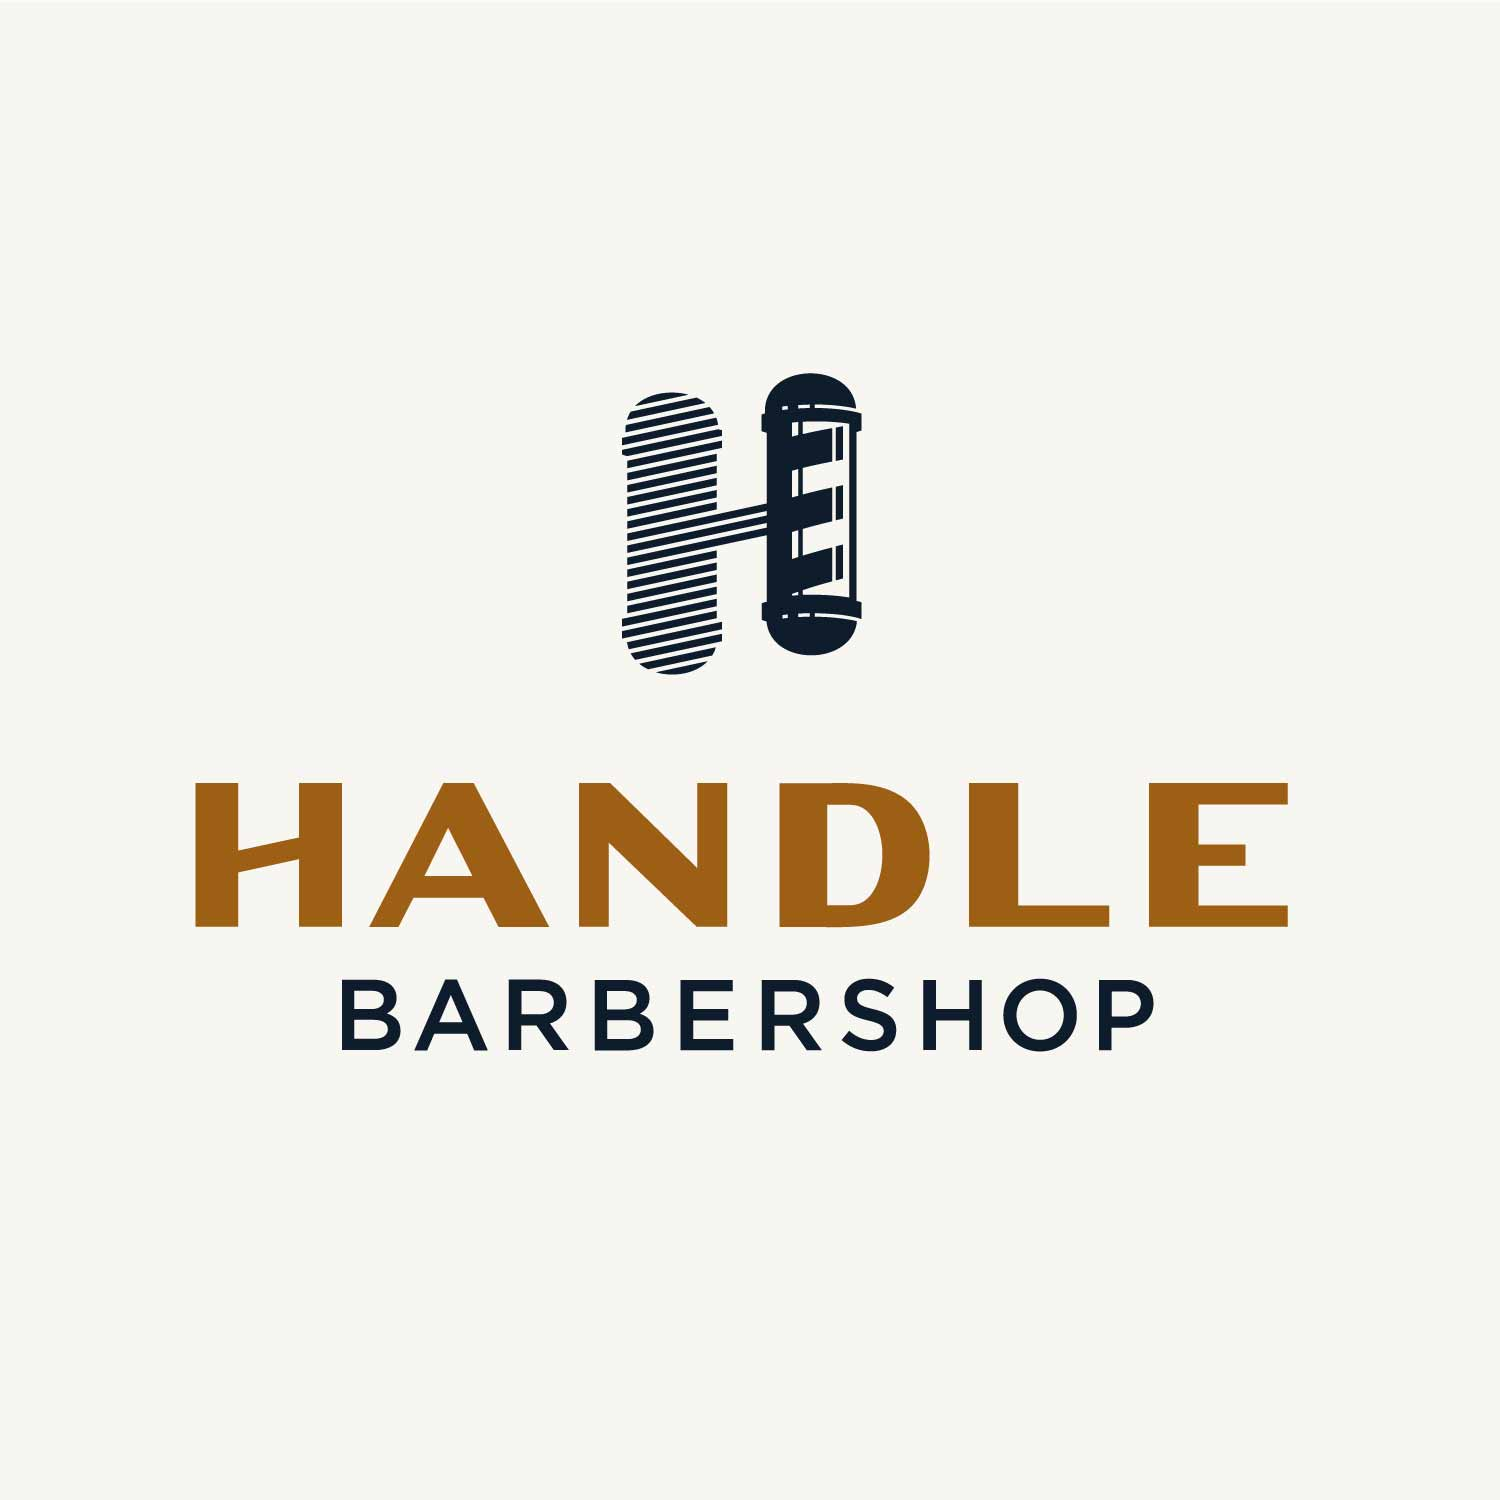 Full Handle Barbershop logo with shadowed parlor pole H—by Hunter Oden of oden.house